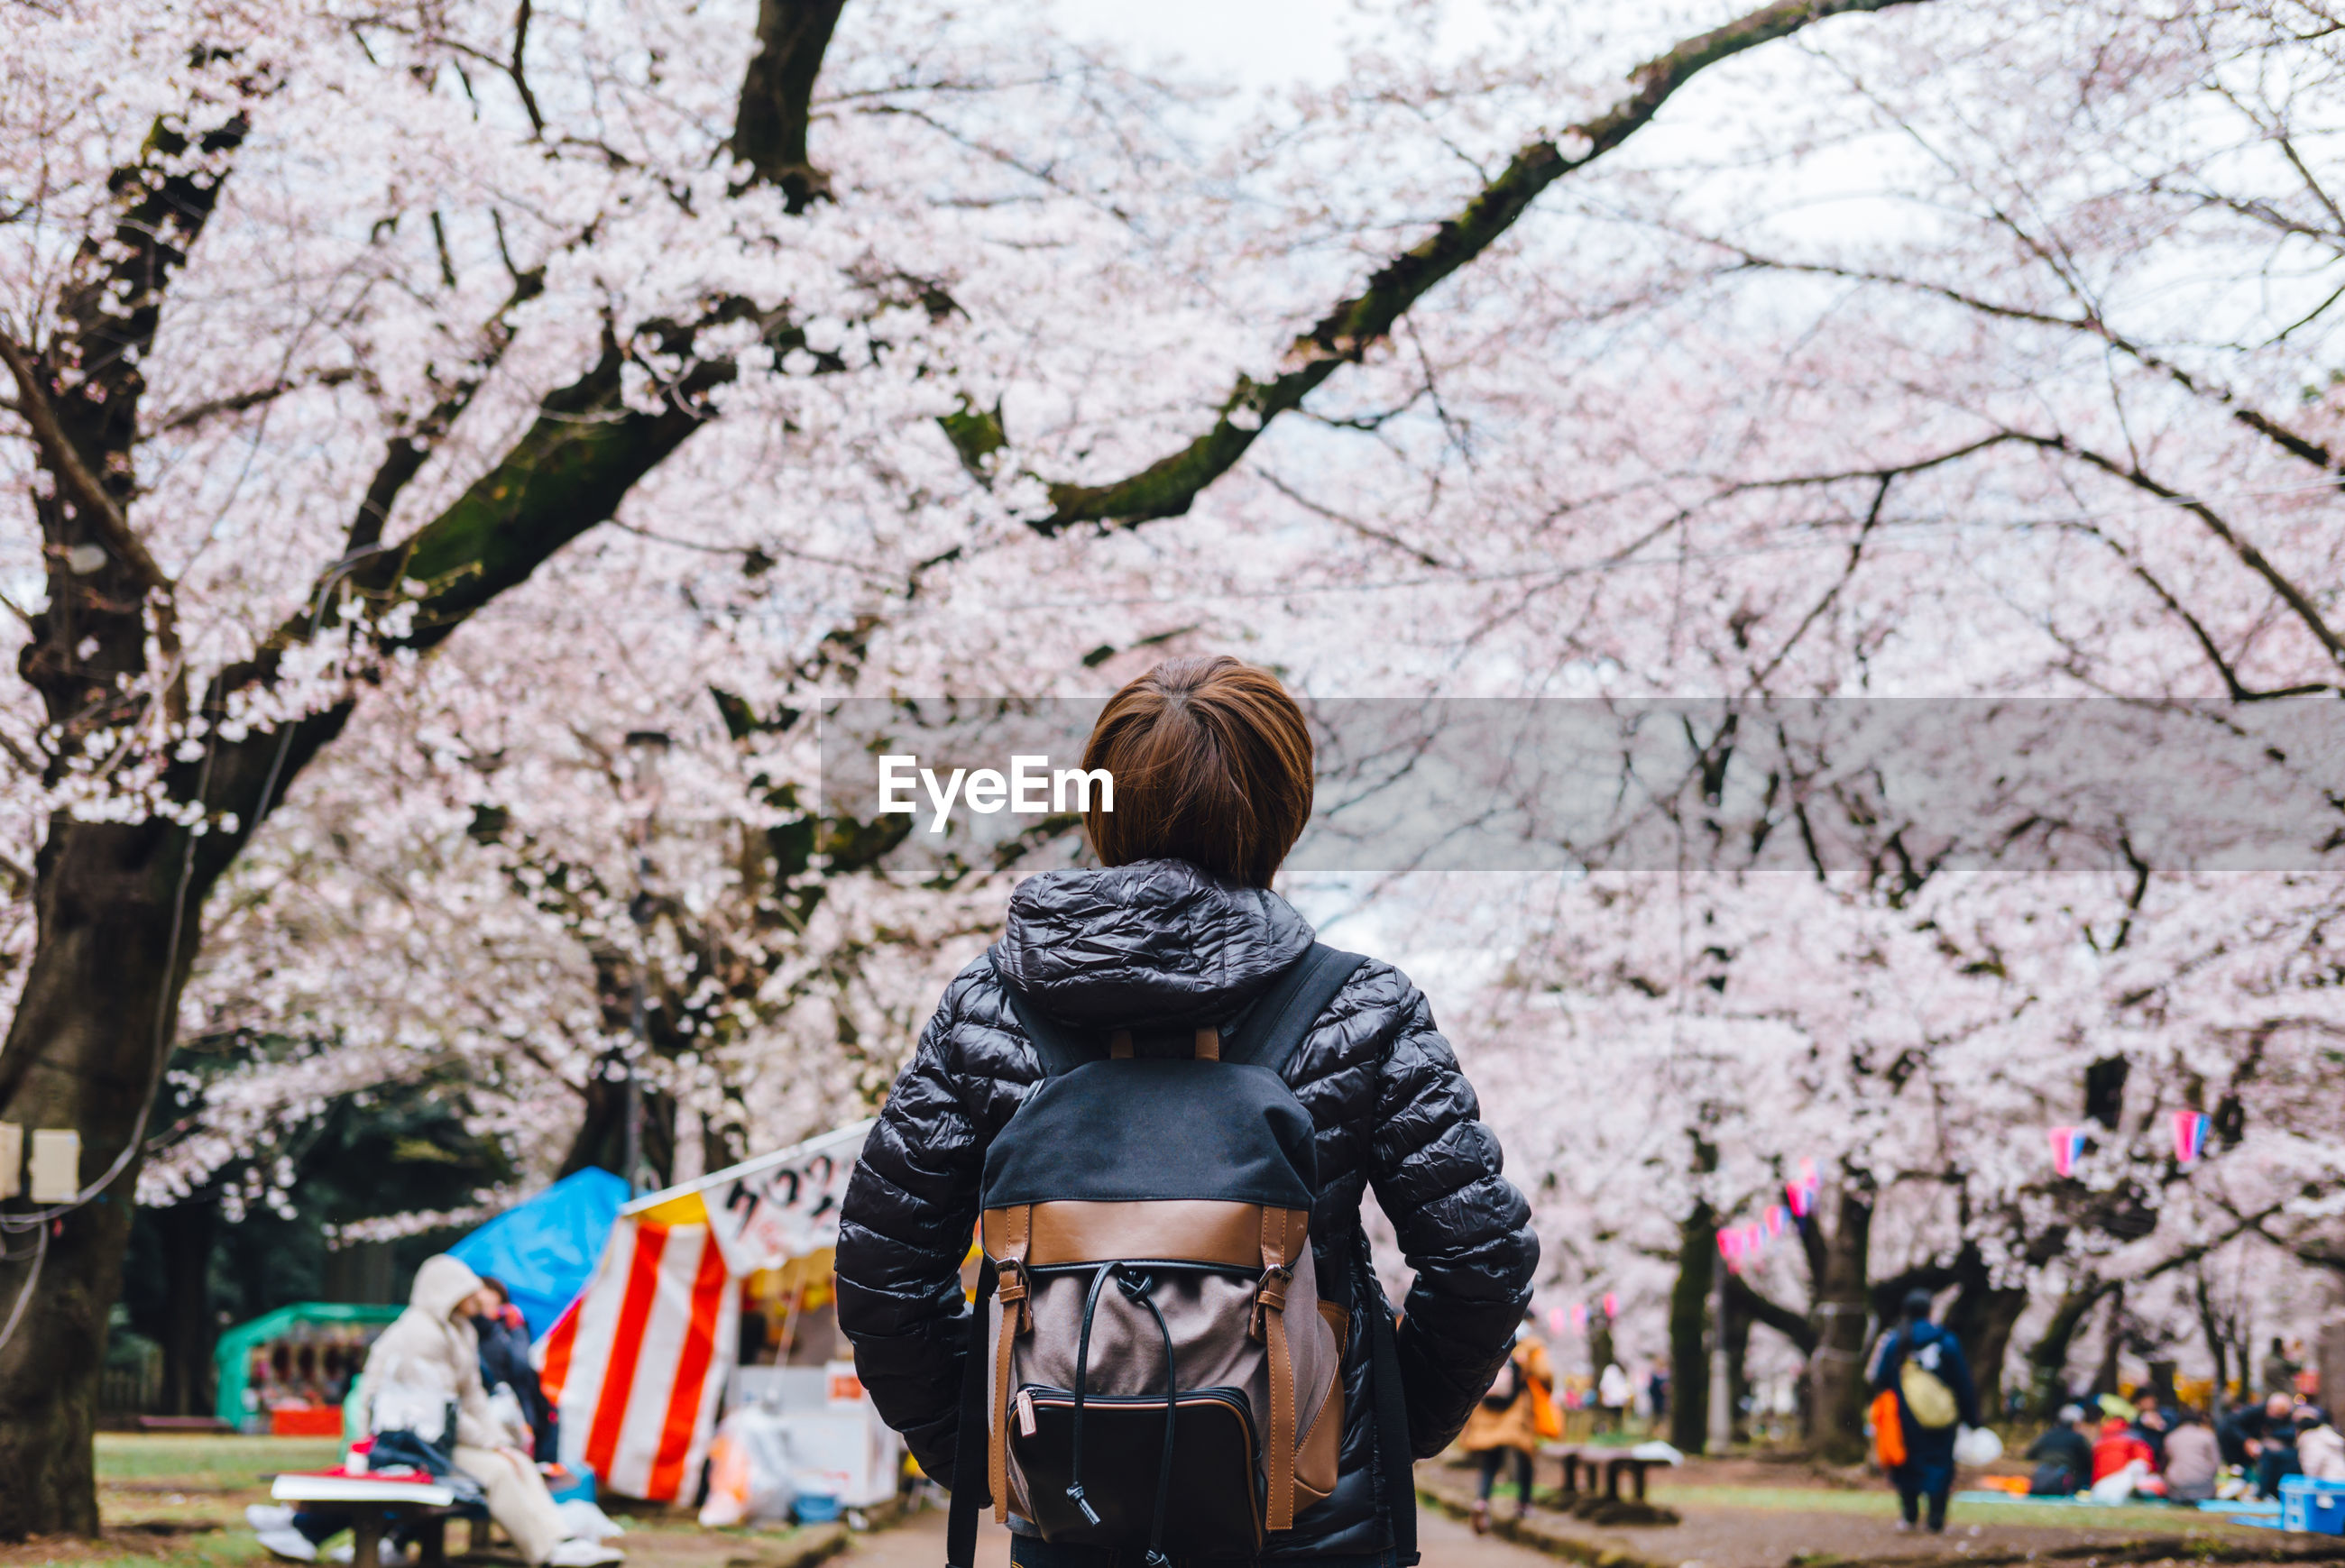 REAR VIEW OF WOMAN WITH CHERRY BLOSSOM FLOWERS